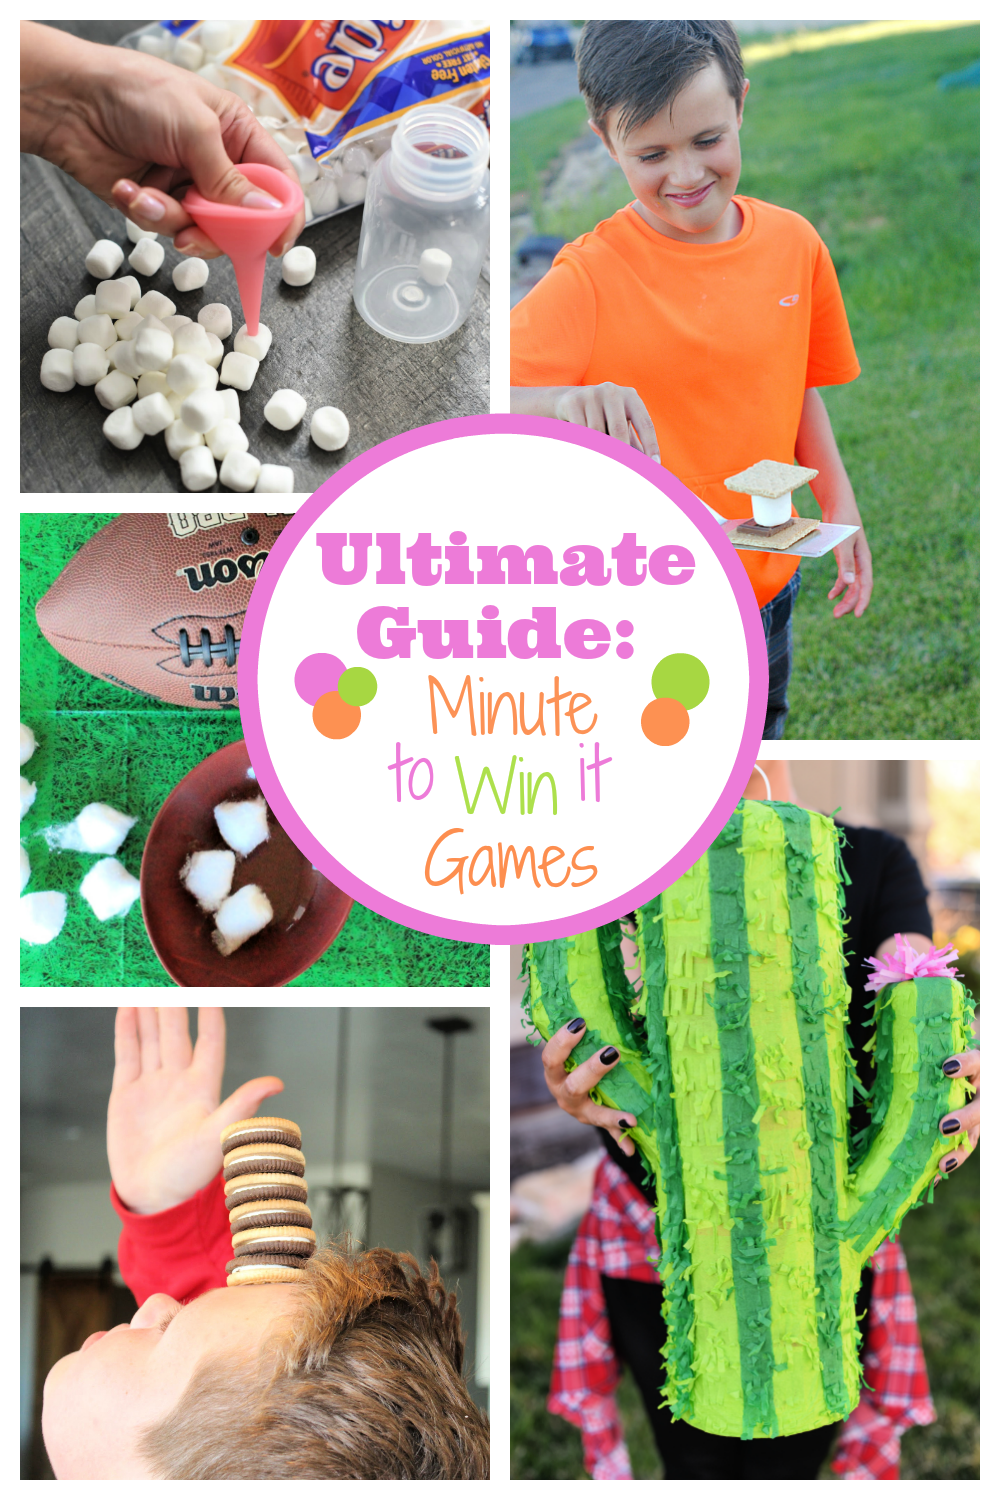 Fun Minute to Win it Games-Minute to win it game ideas for all ages, all holidays and any occasion you're looking for! Perfect party games for any occasion! #minutetowinit #partygames #partyideas #games #gamesforkids